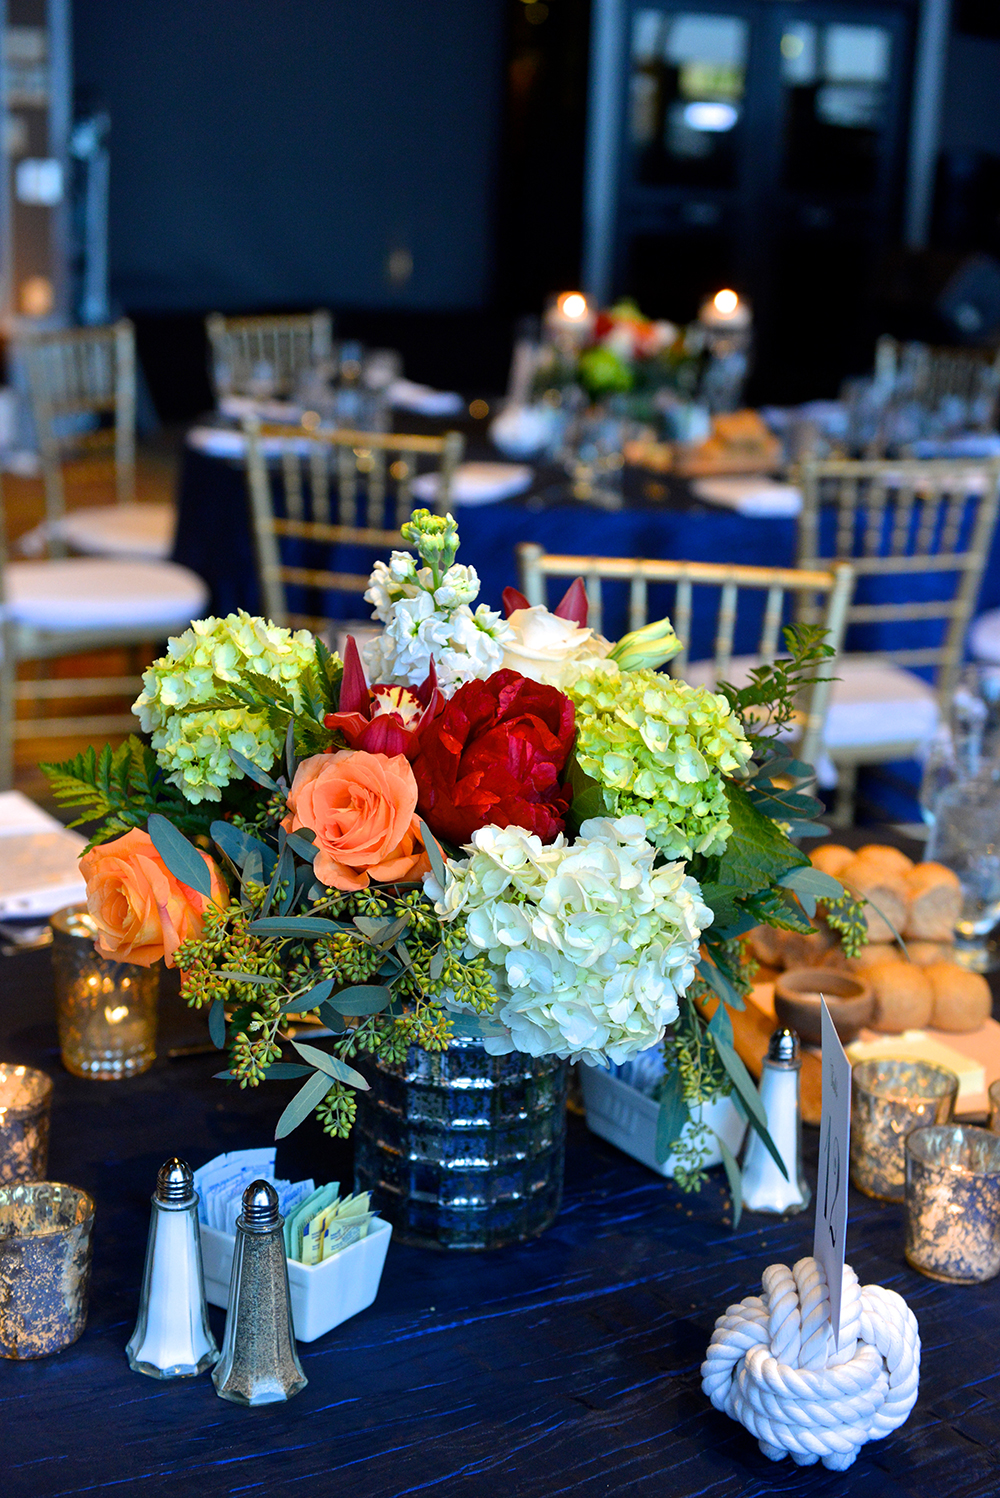 Savannah Table Scape by Kelli Corn